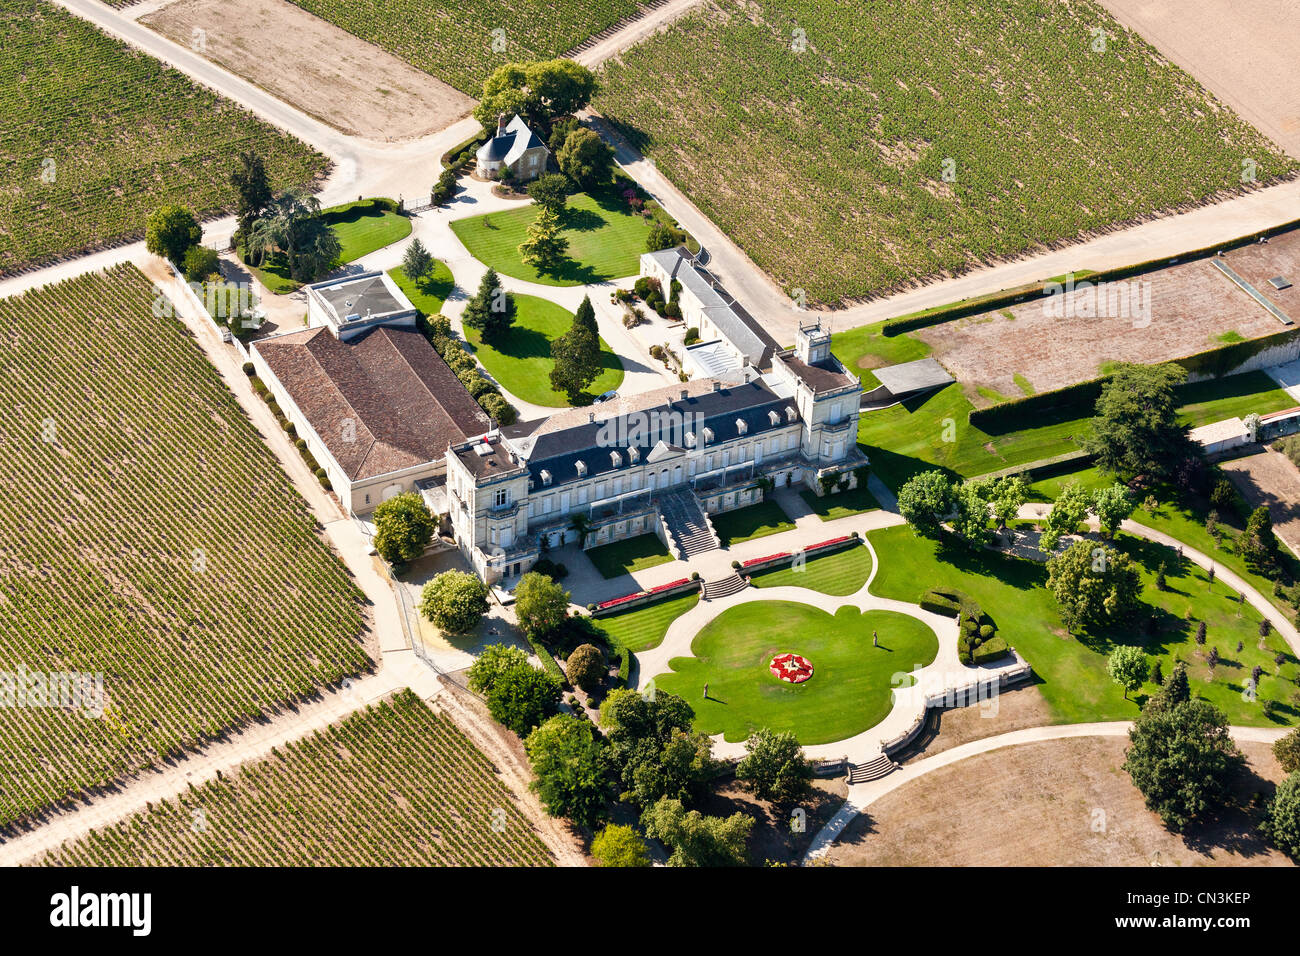 France, Gironde, St Julien Beychevelle Beychevelle castle winery (aerial view) - Stock Image